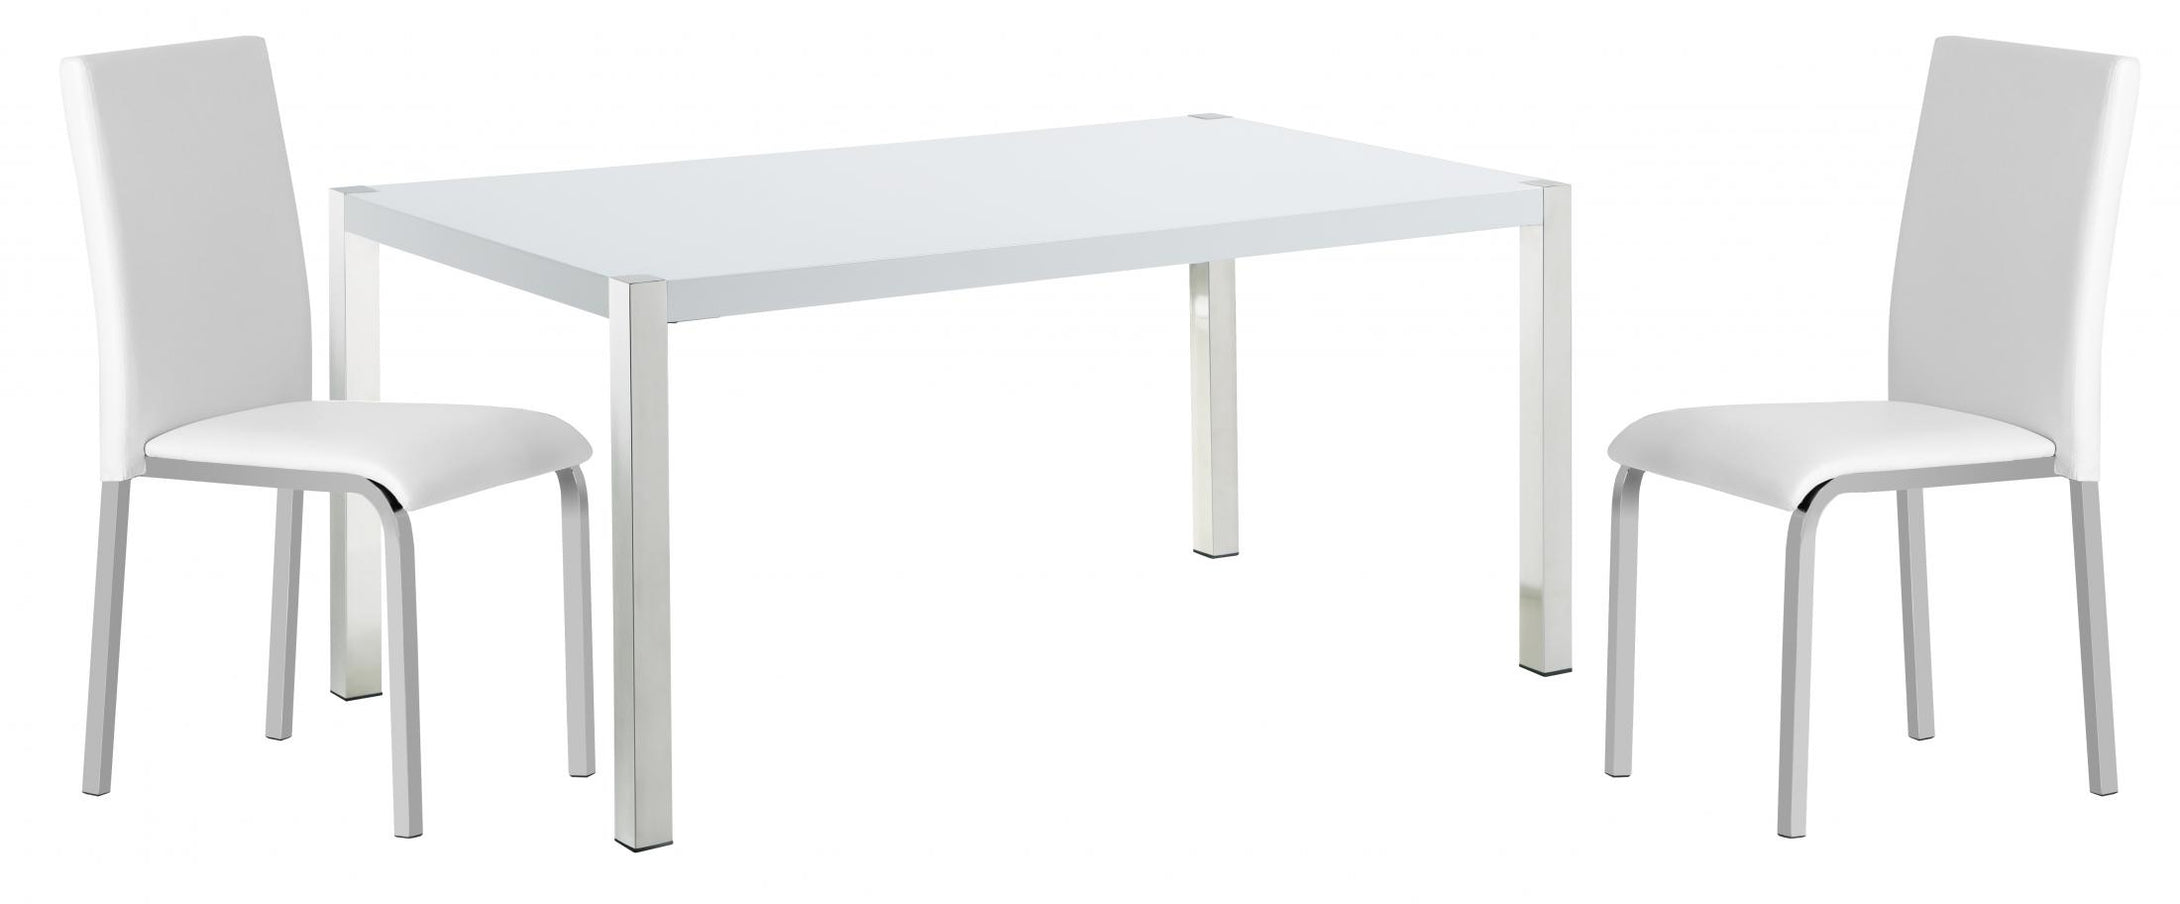 Gamma Dining Table White High Gloss